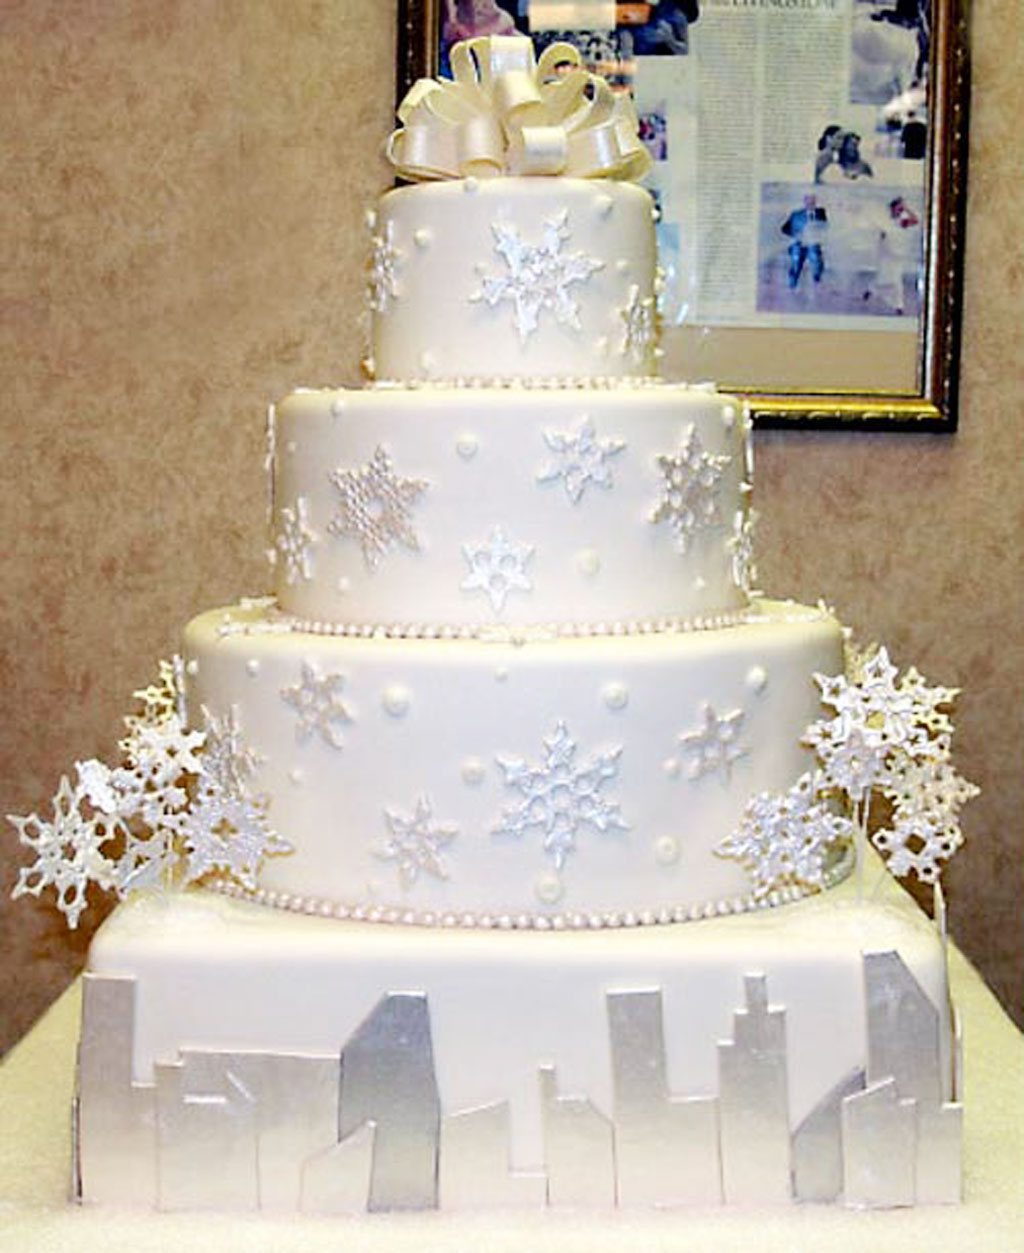 wedding cake pattern design snowflake wedding cake designs wedding cake cake ideas 23386